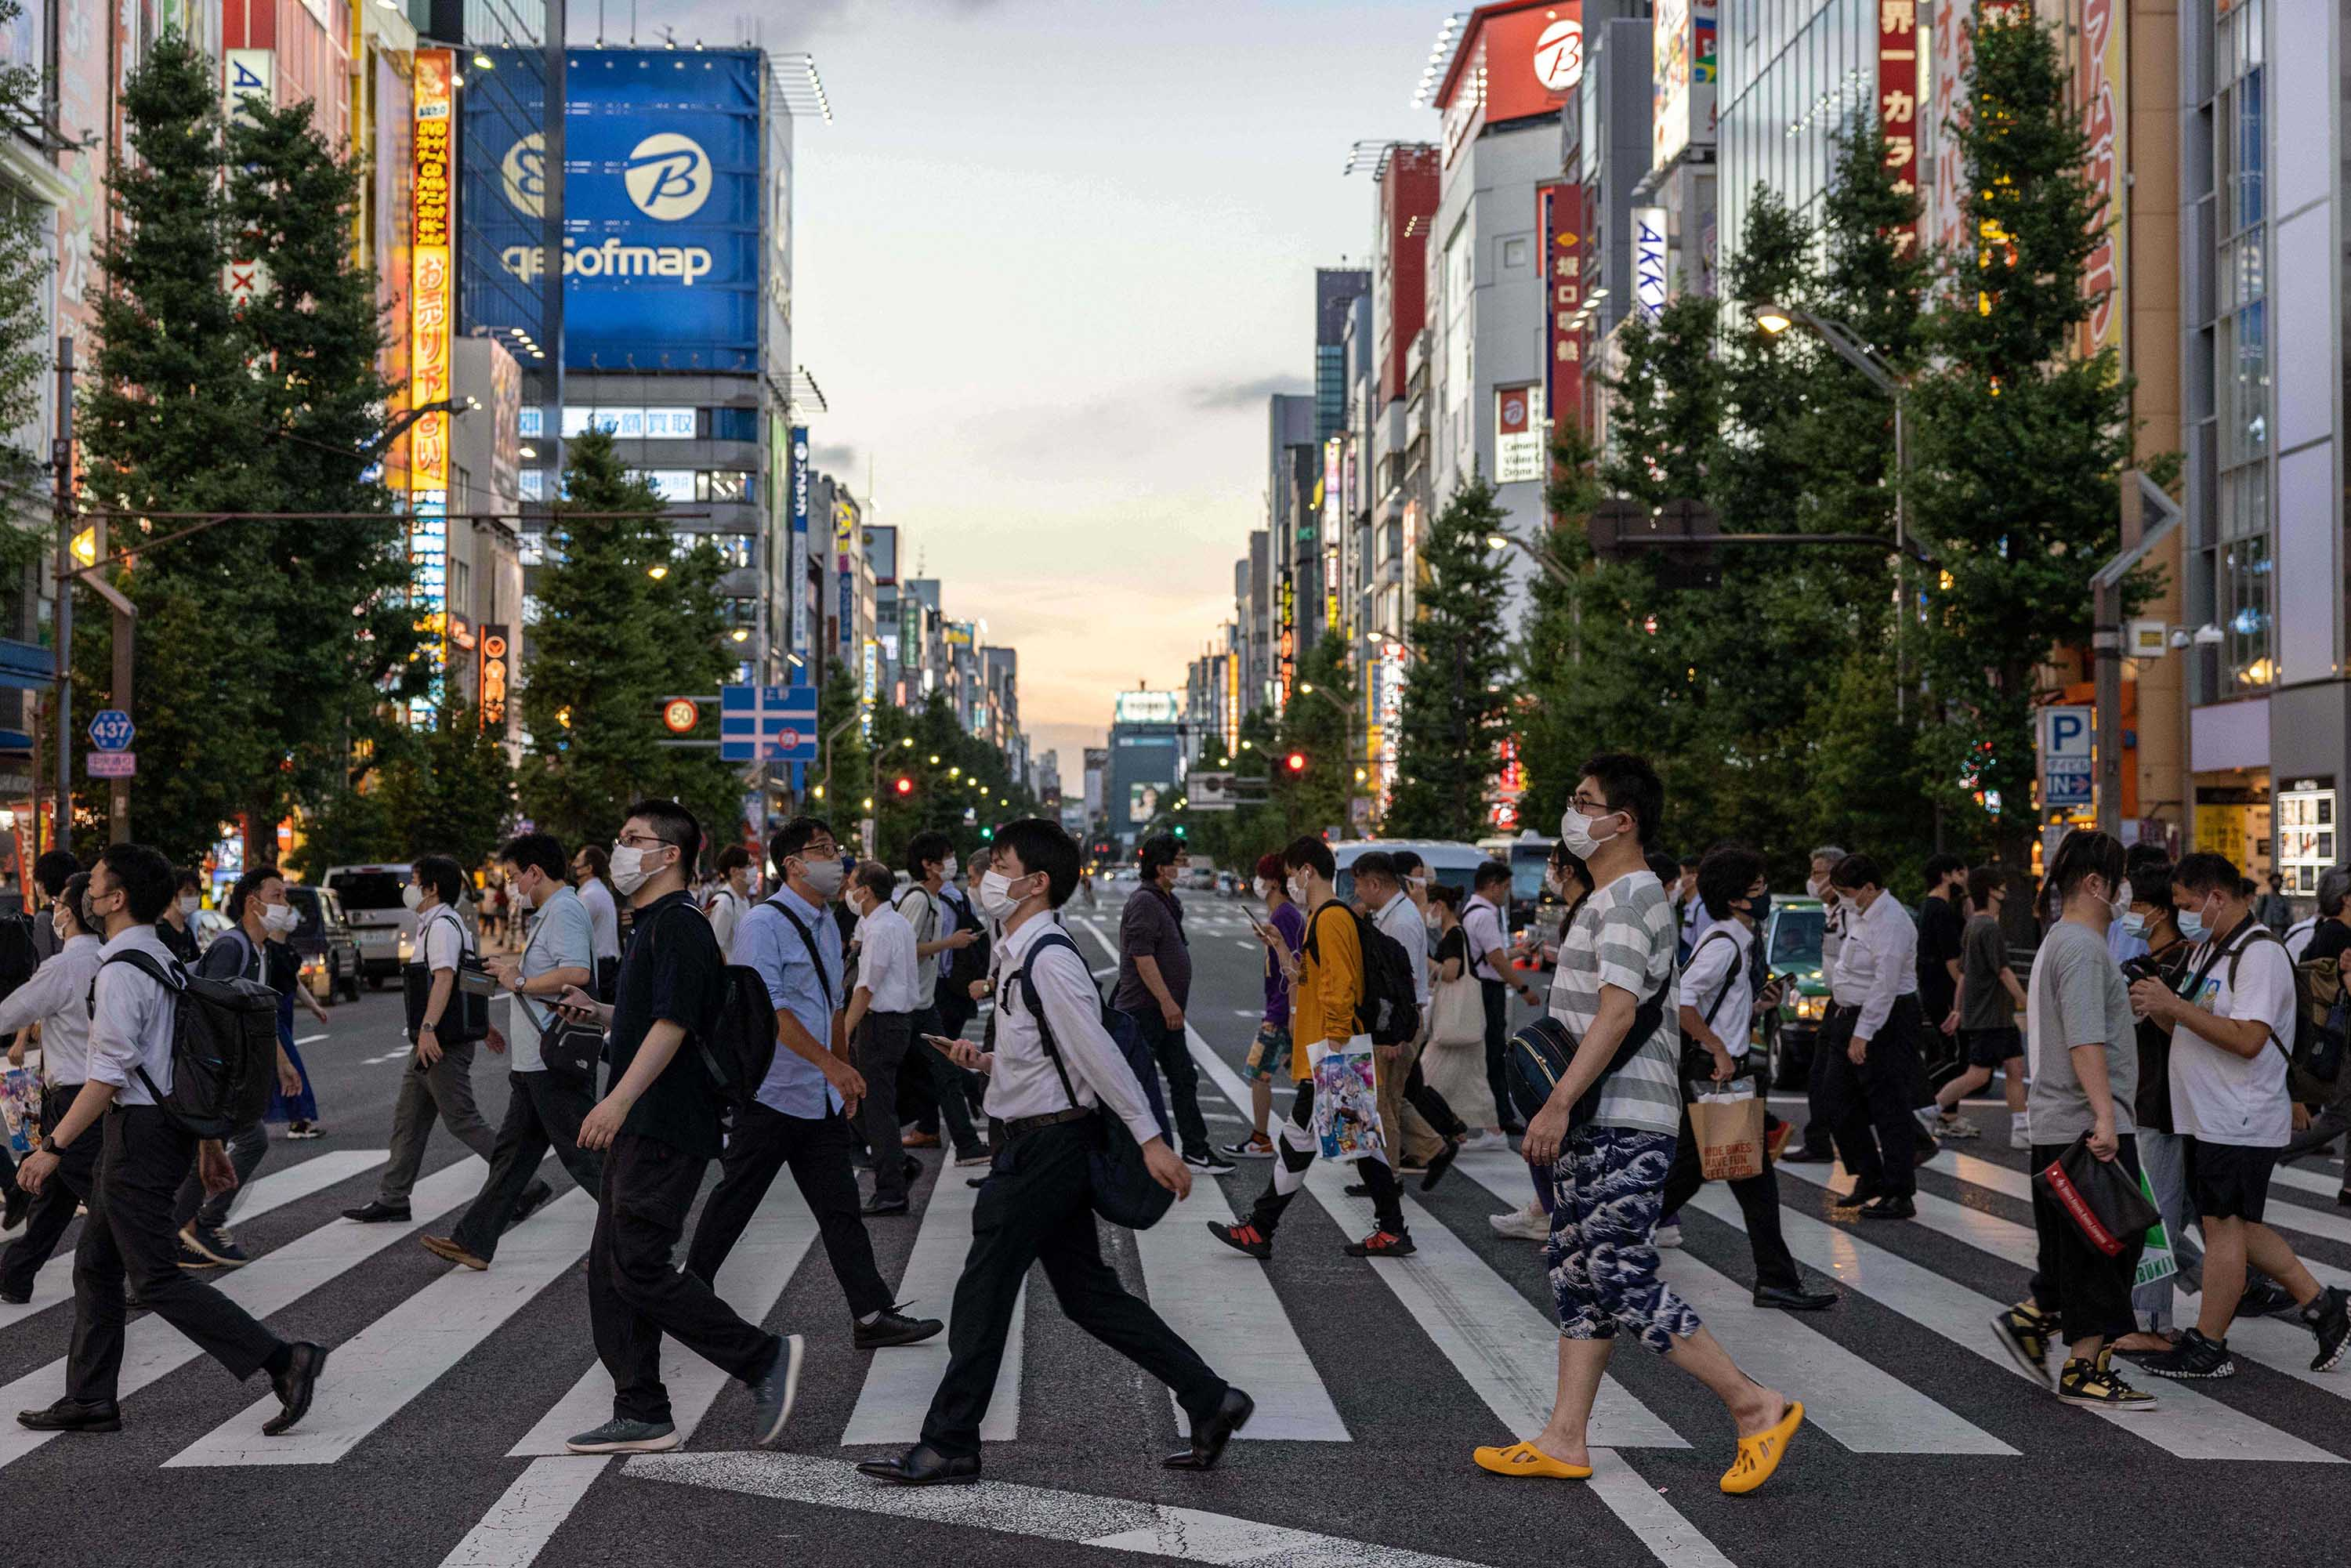 Pedestrians cross a street in the Akihabara district of Tokyo on August 4, as a coronavirus state of emergency remains in place until August 31.